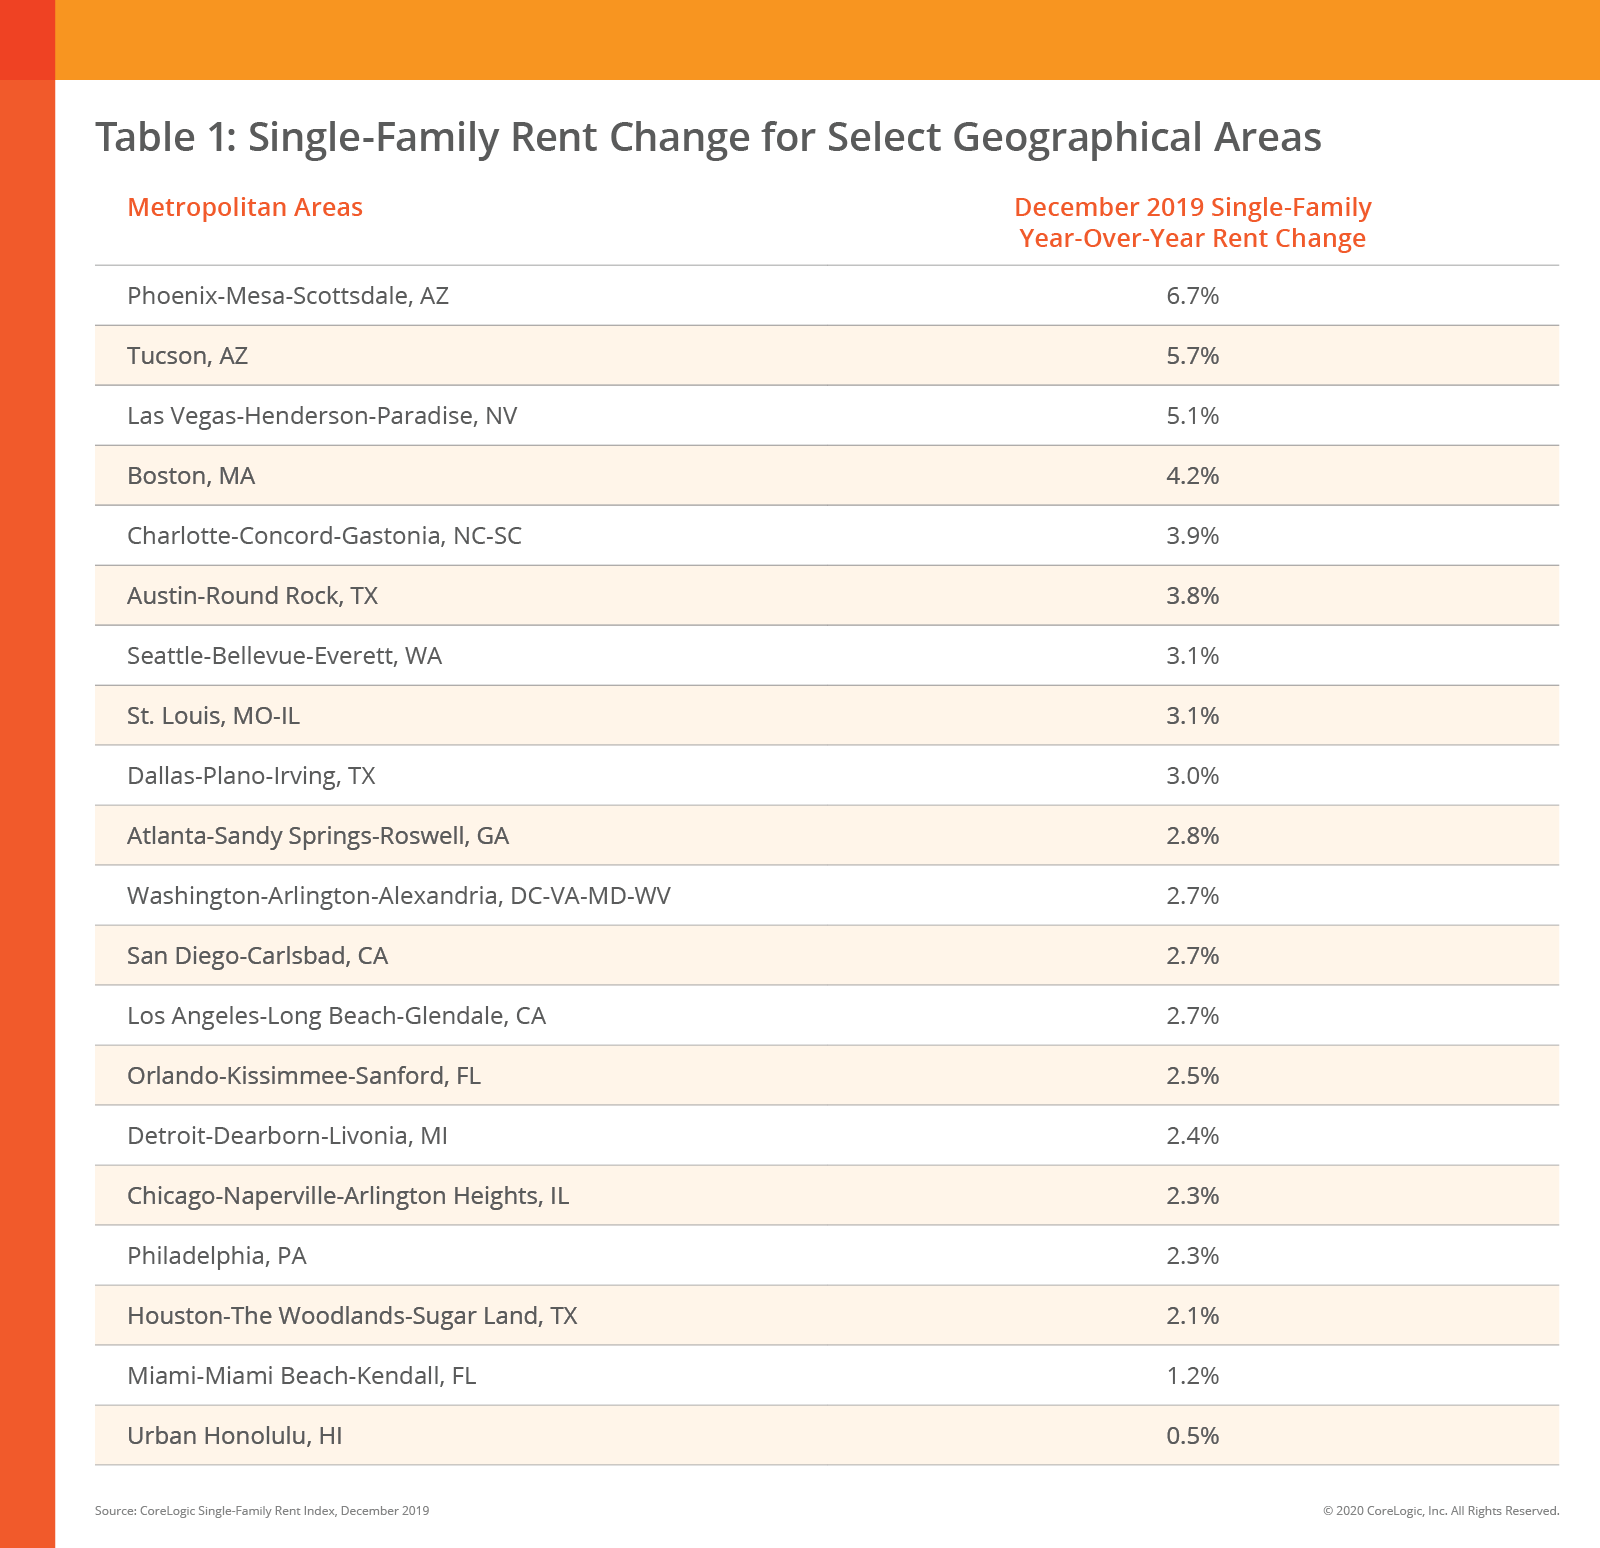 single family home rents table. Visit source link at the end of this article for more information.